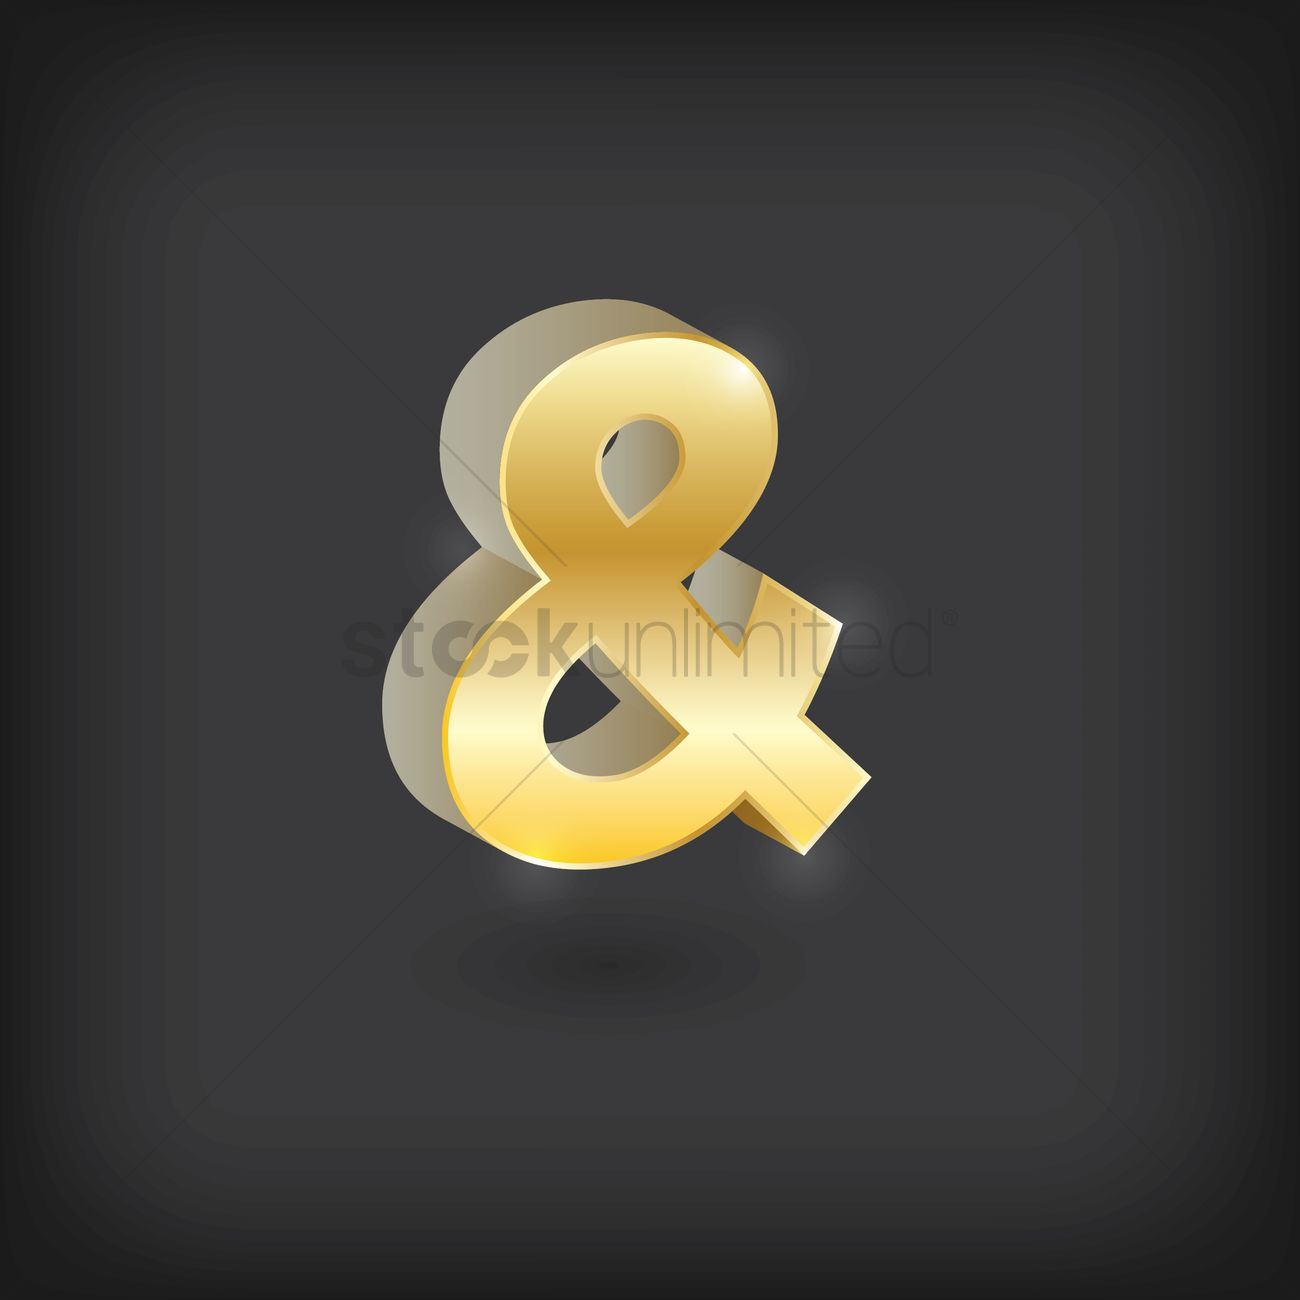 Ampersand symbol Vector Image - 1871350 | StockUnlimited